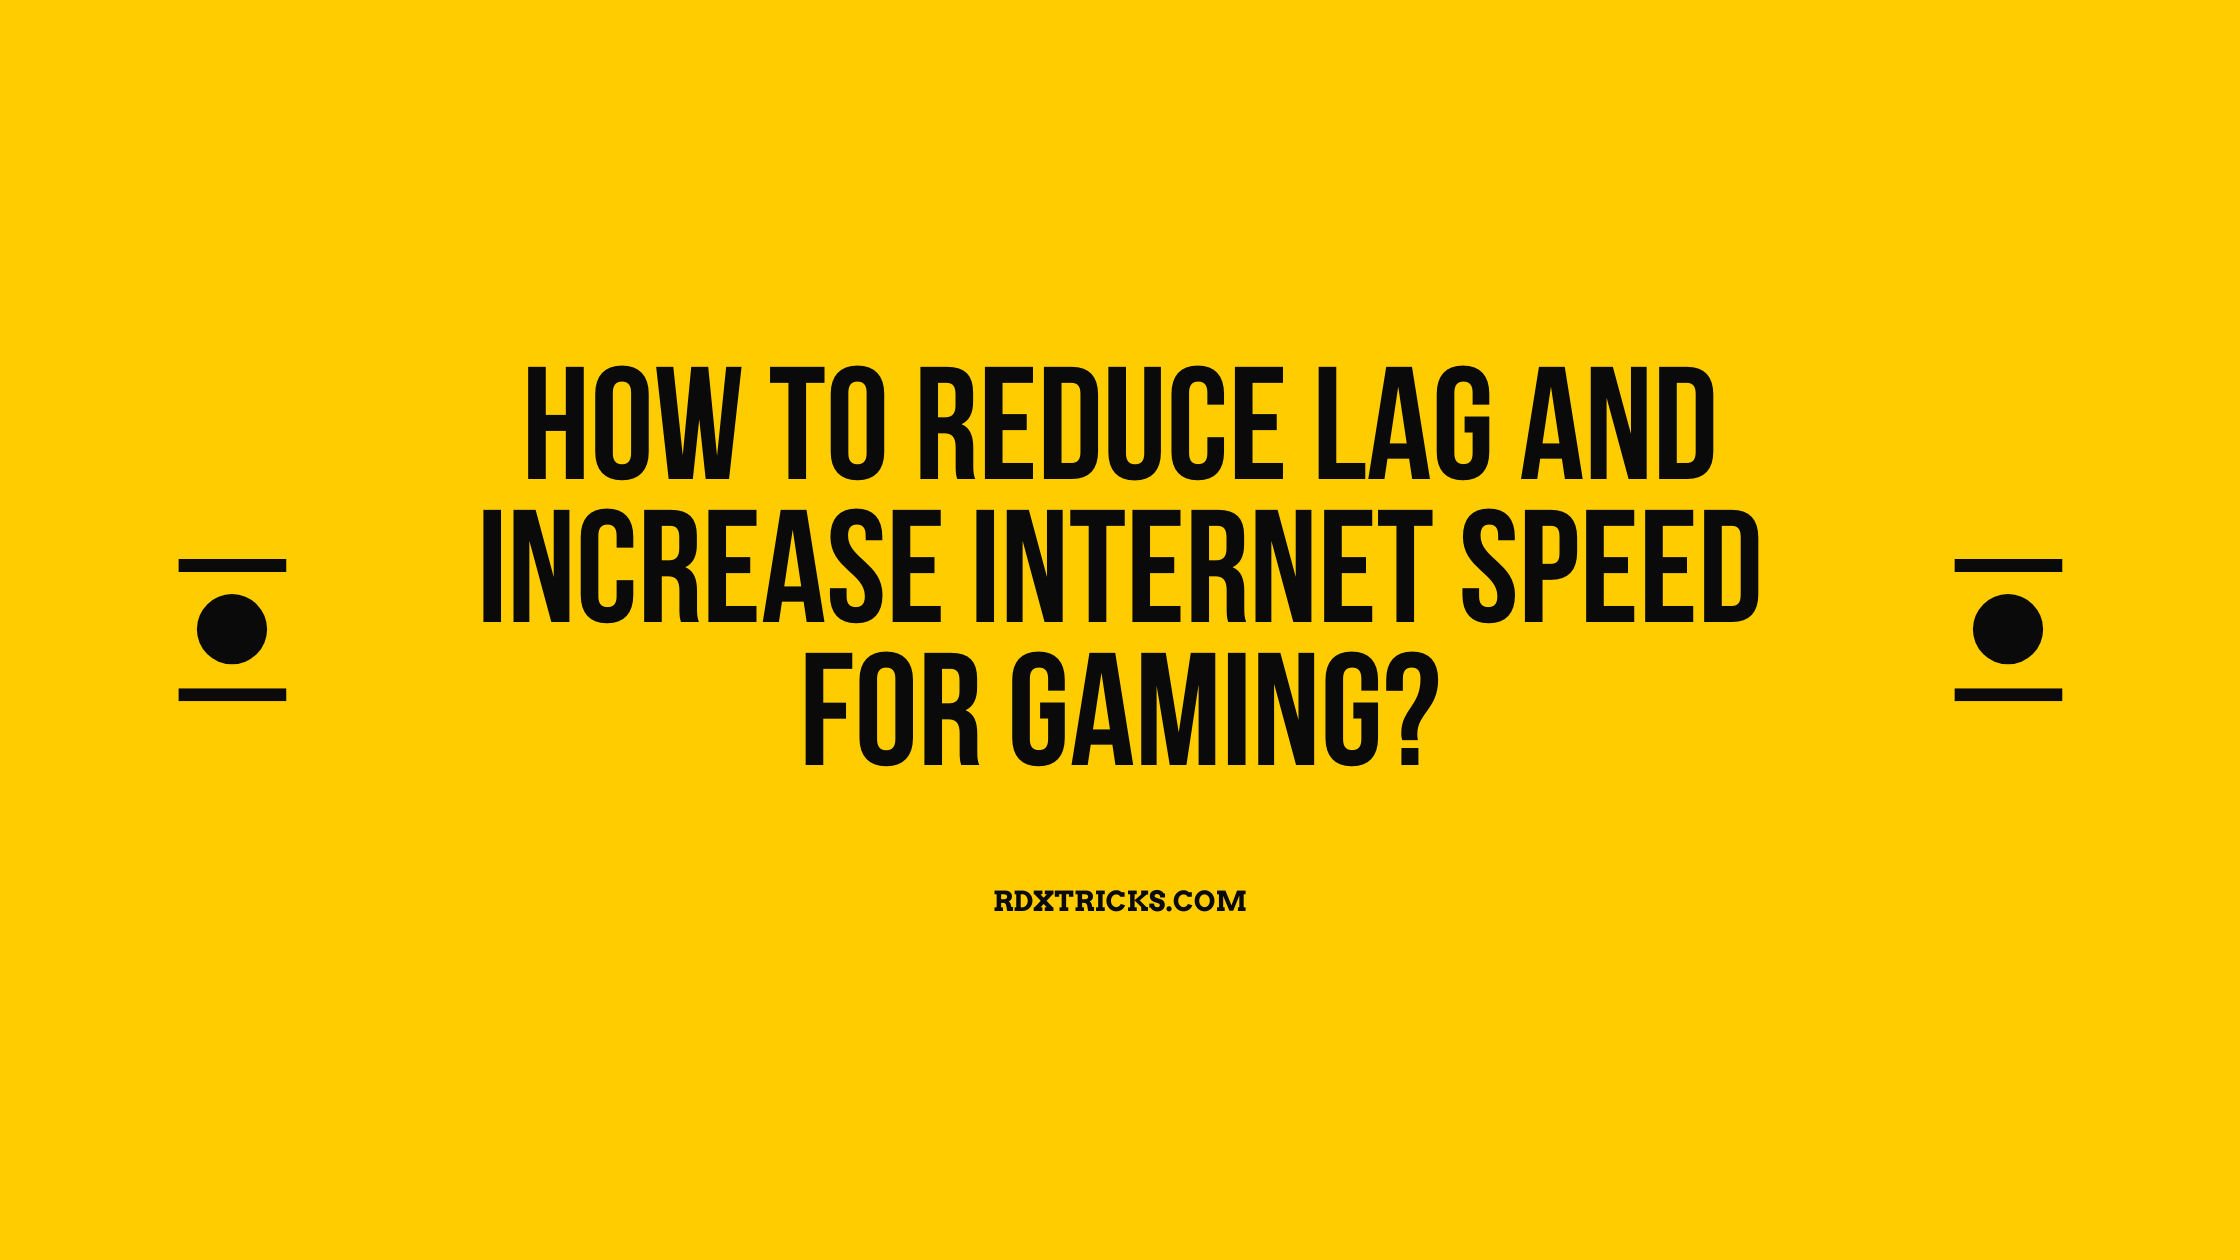 How to Reduce Lag and Increase Internet Speed for Gaming?